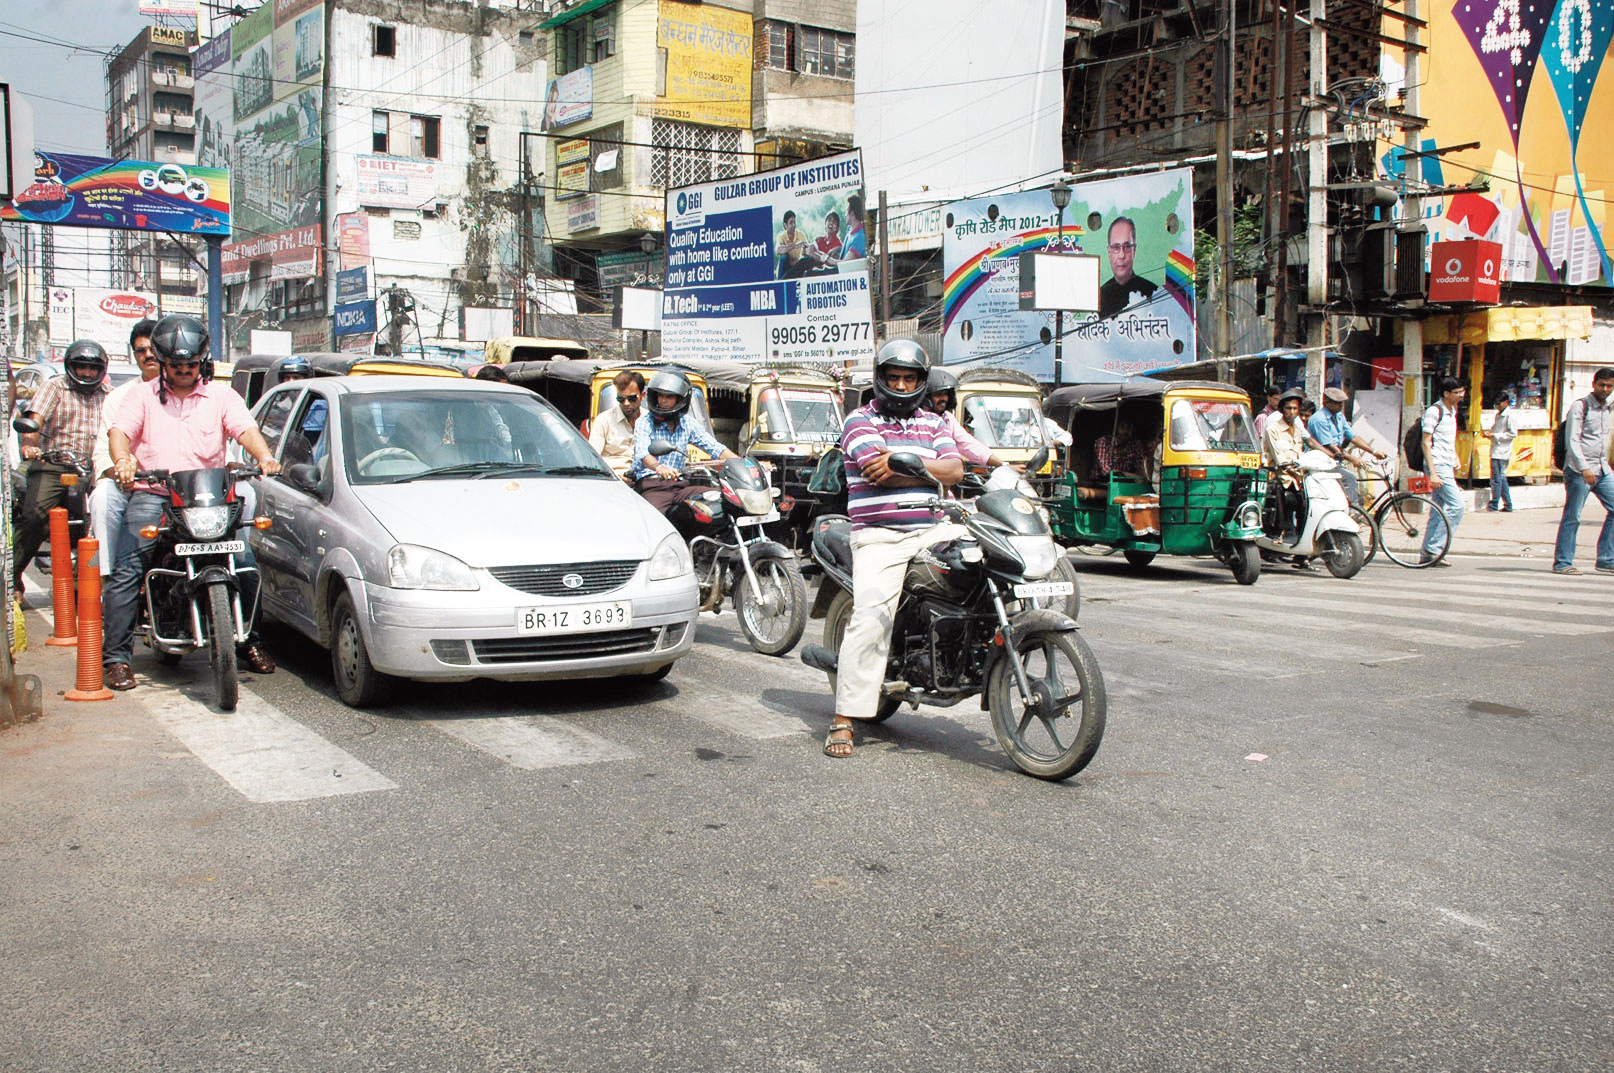 Vehicles violate zebra crossing rules at a city junction